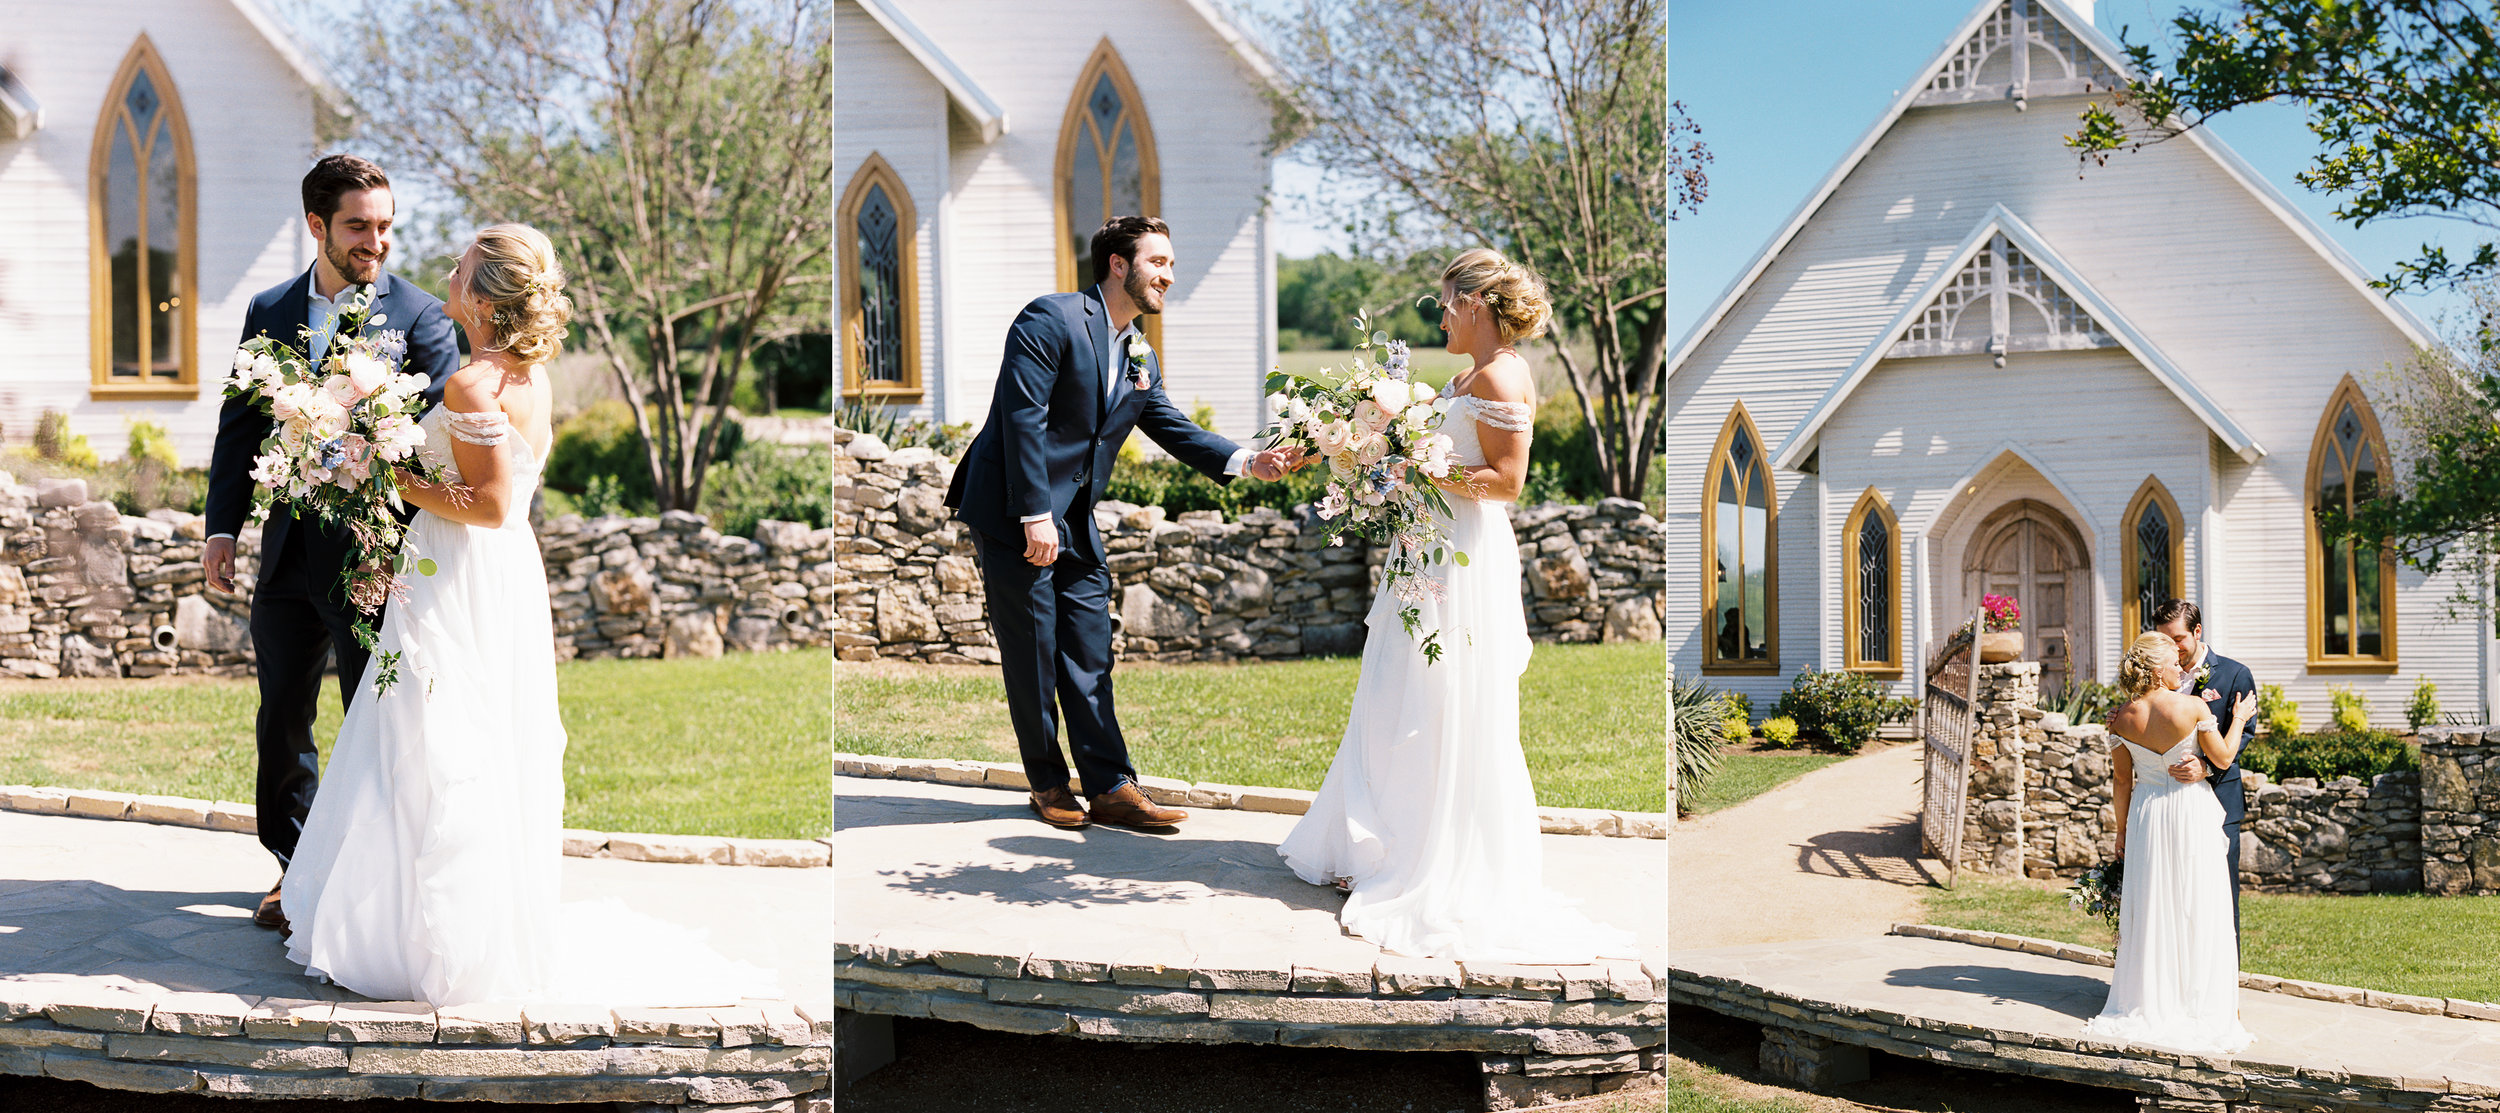 Laura & Kyle Preview-10.jpg